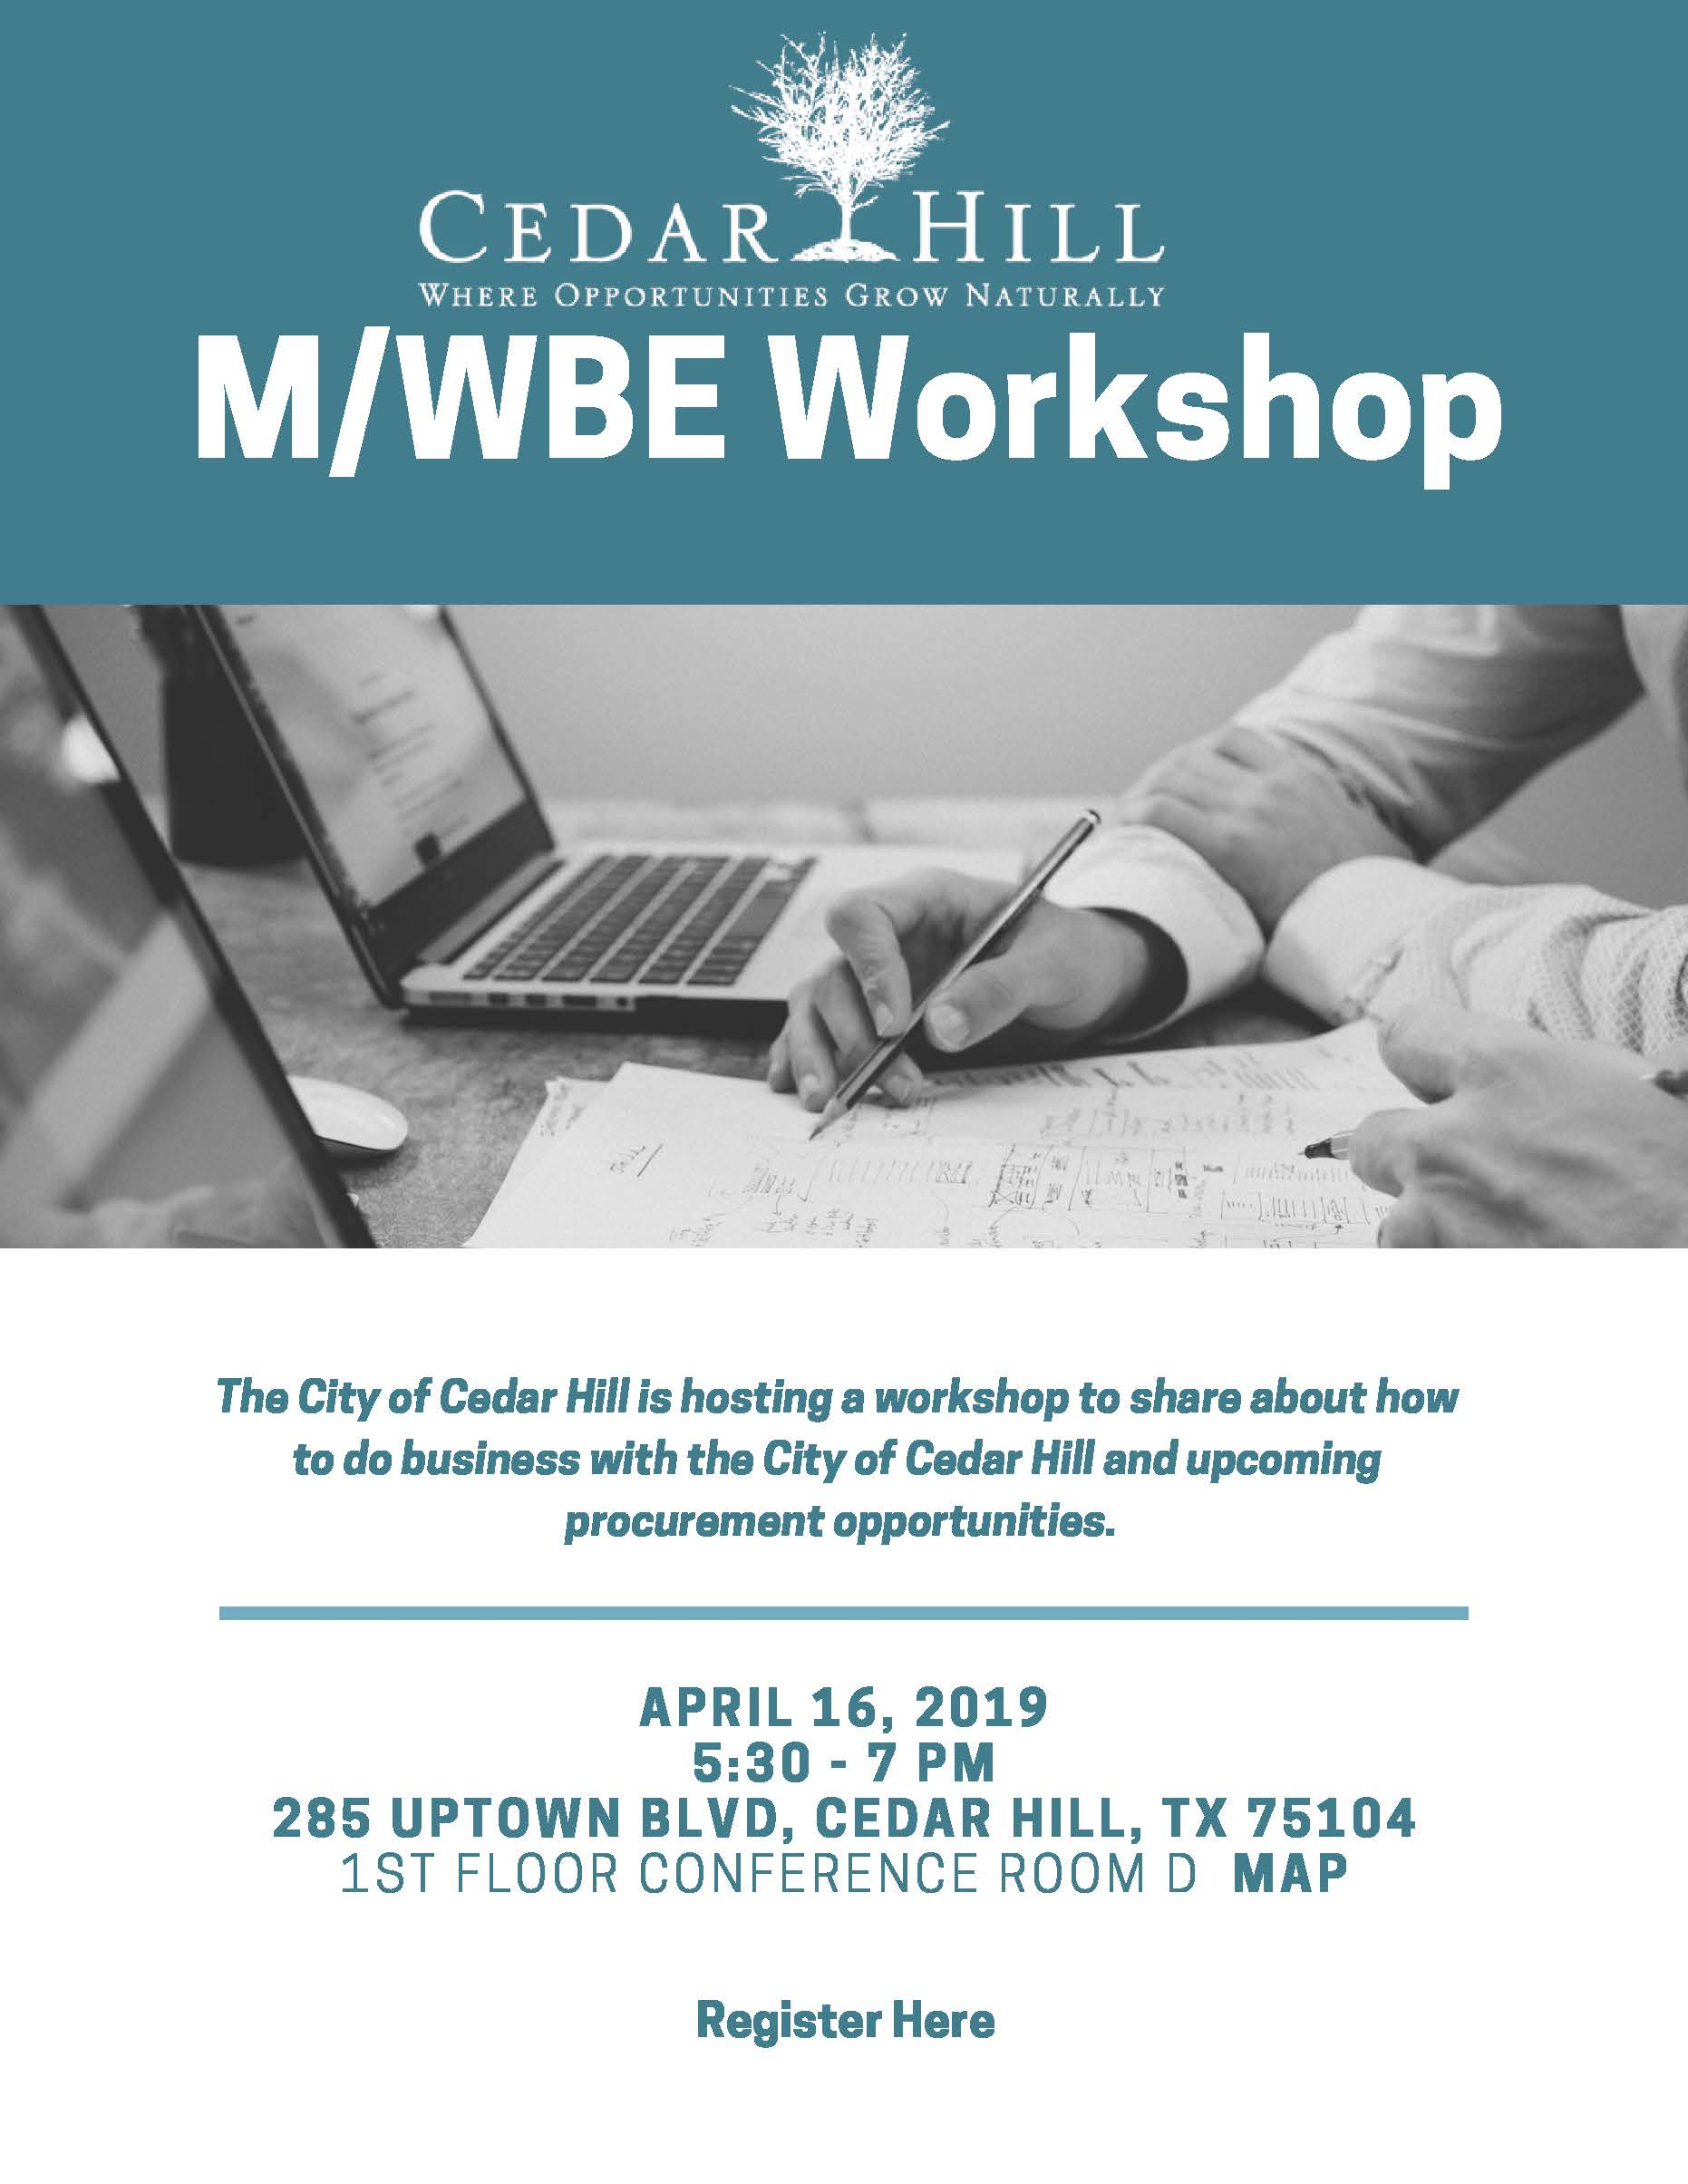 MWBE Workshop Flyer